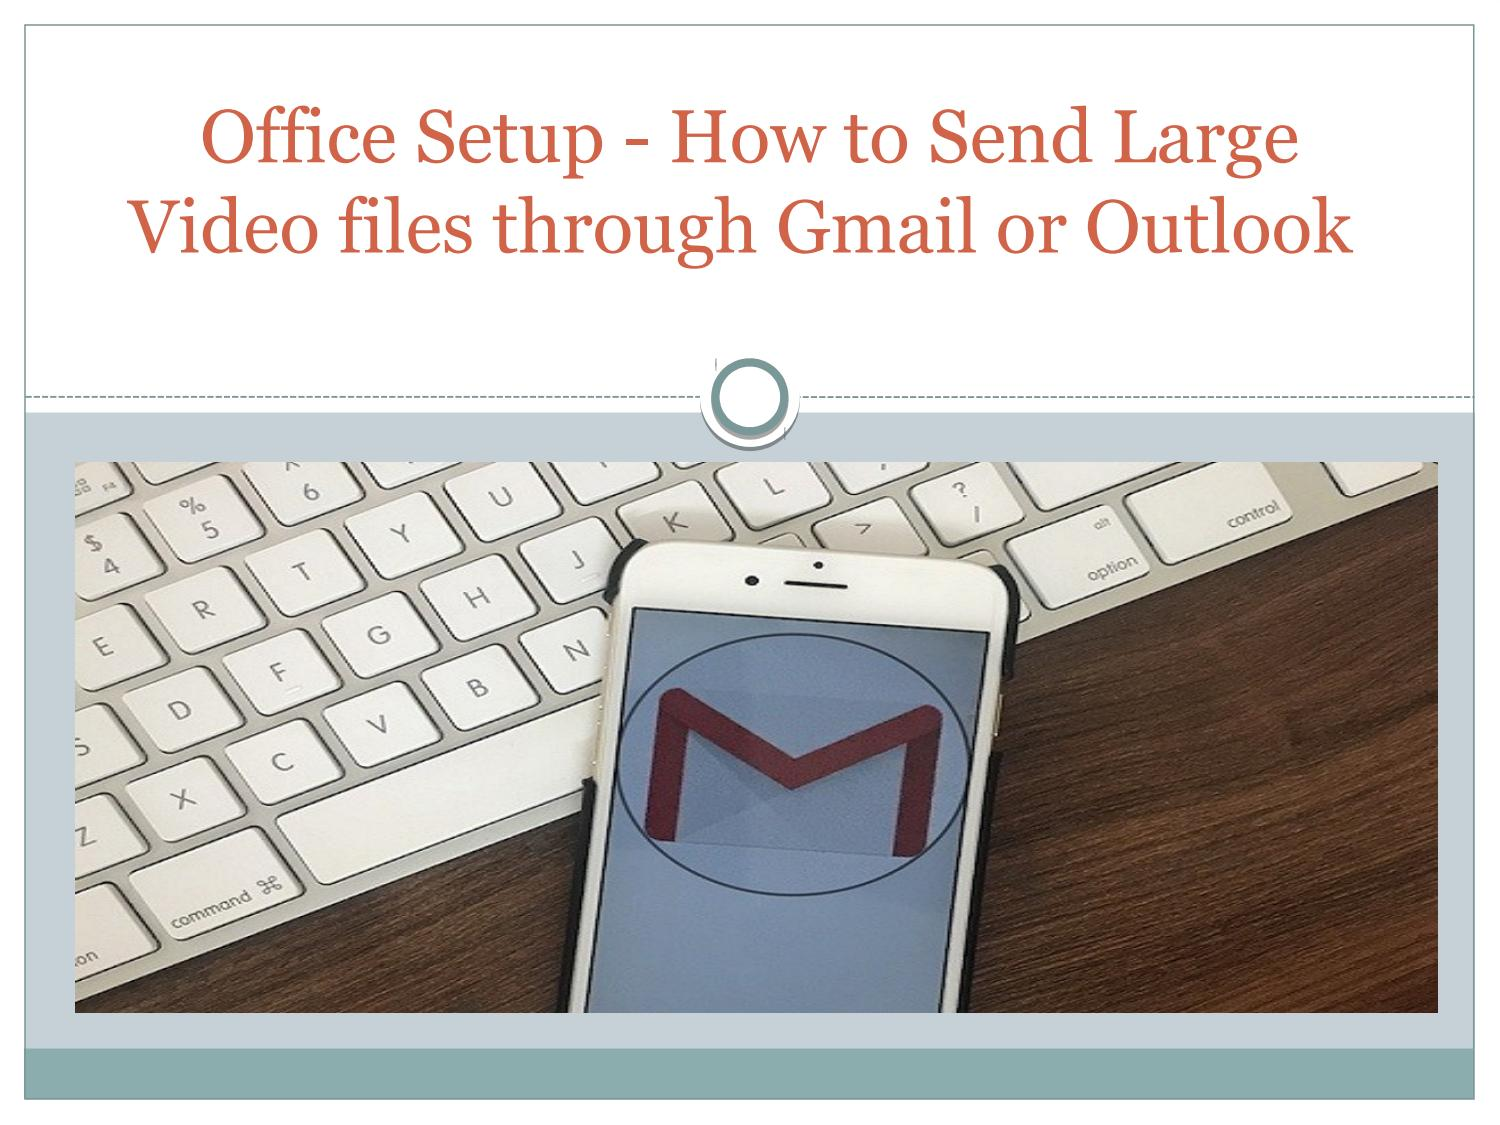 Office Setup - How to Send Large Video files through Gmail